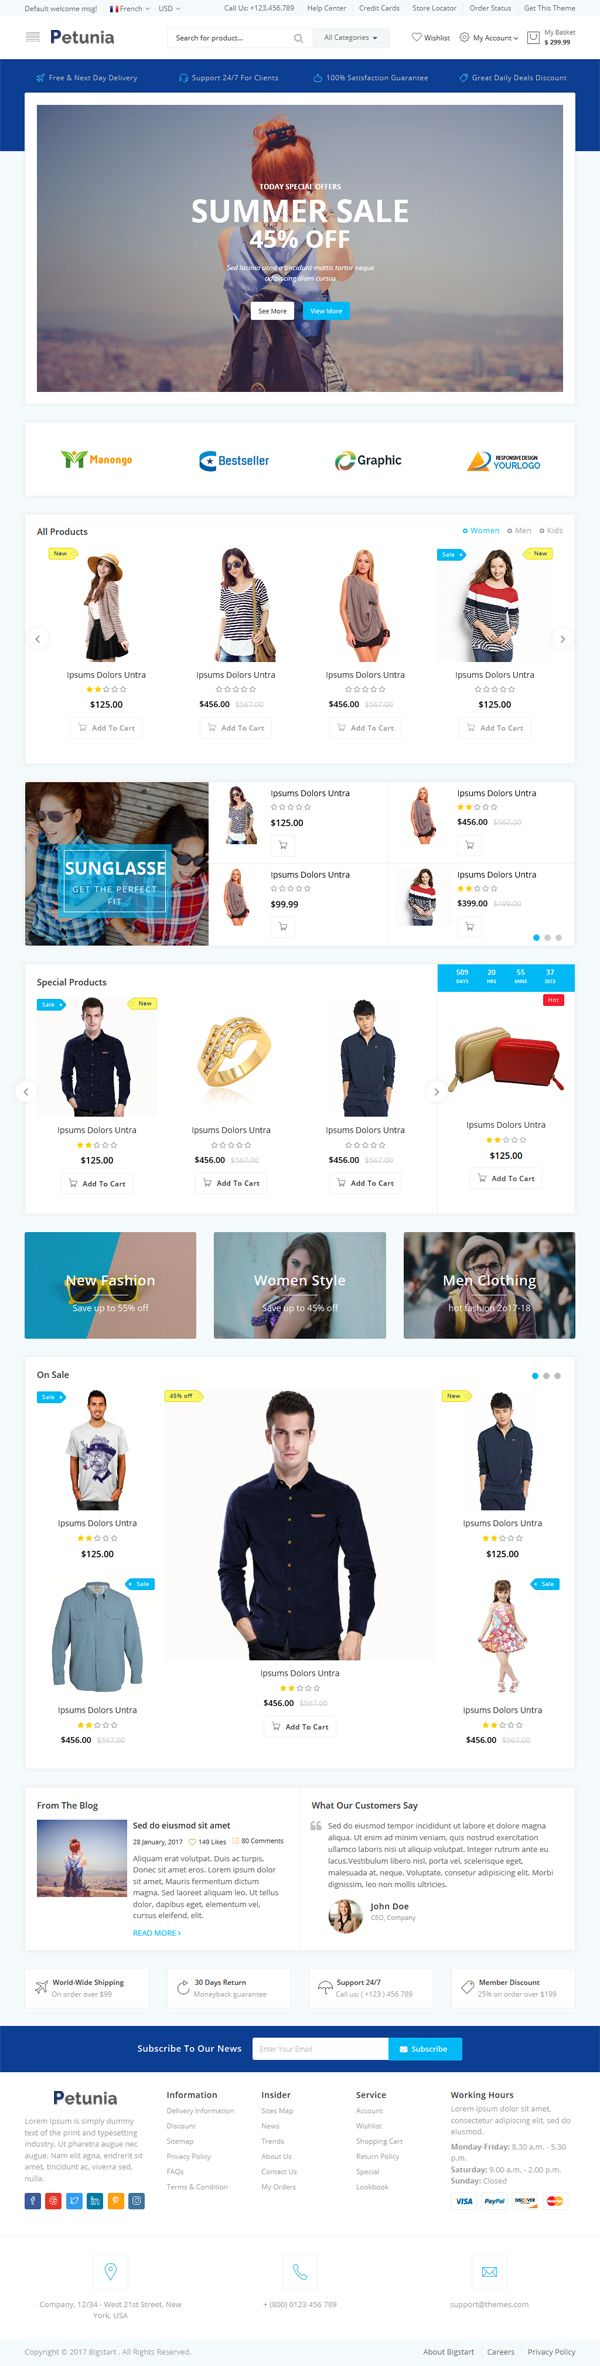 Petunia -Fashion Store Website Template Screenshot 2